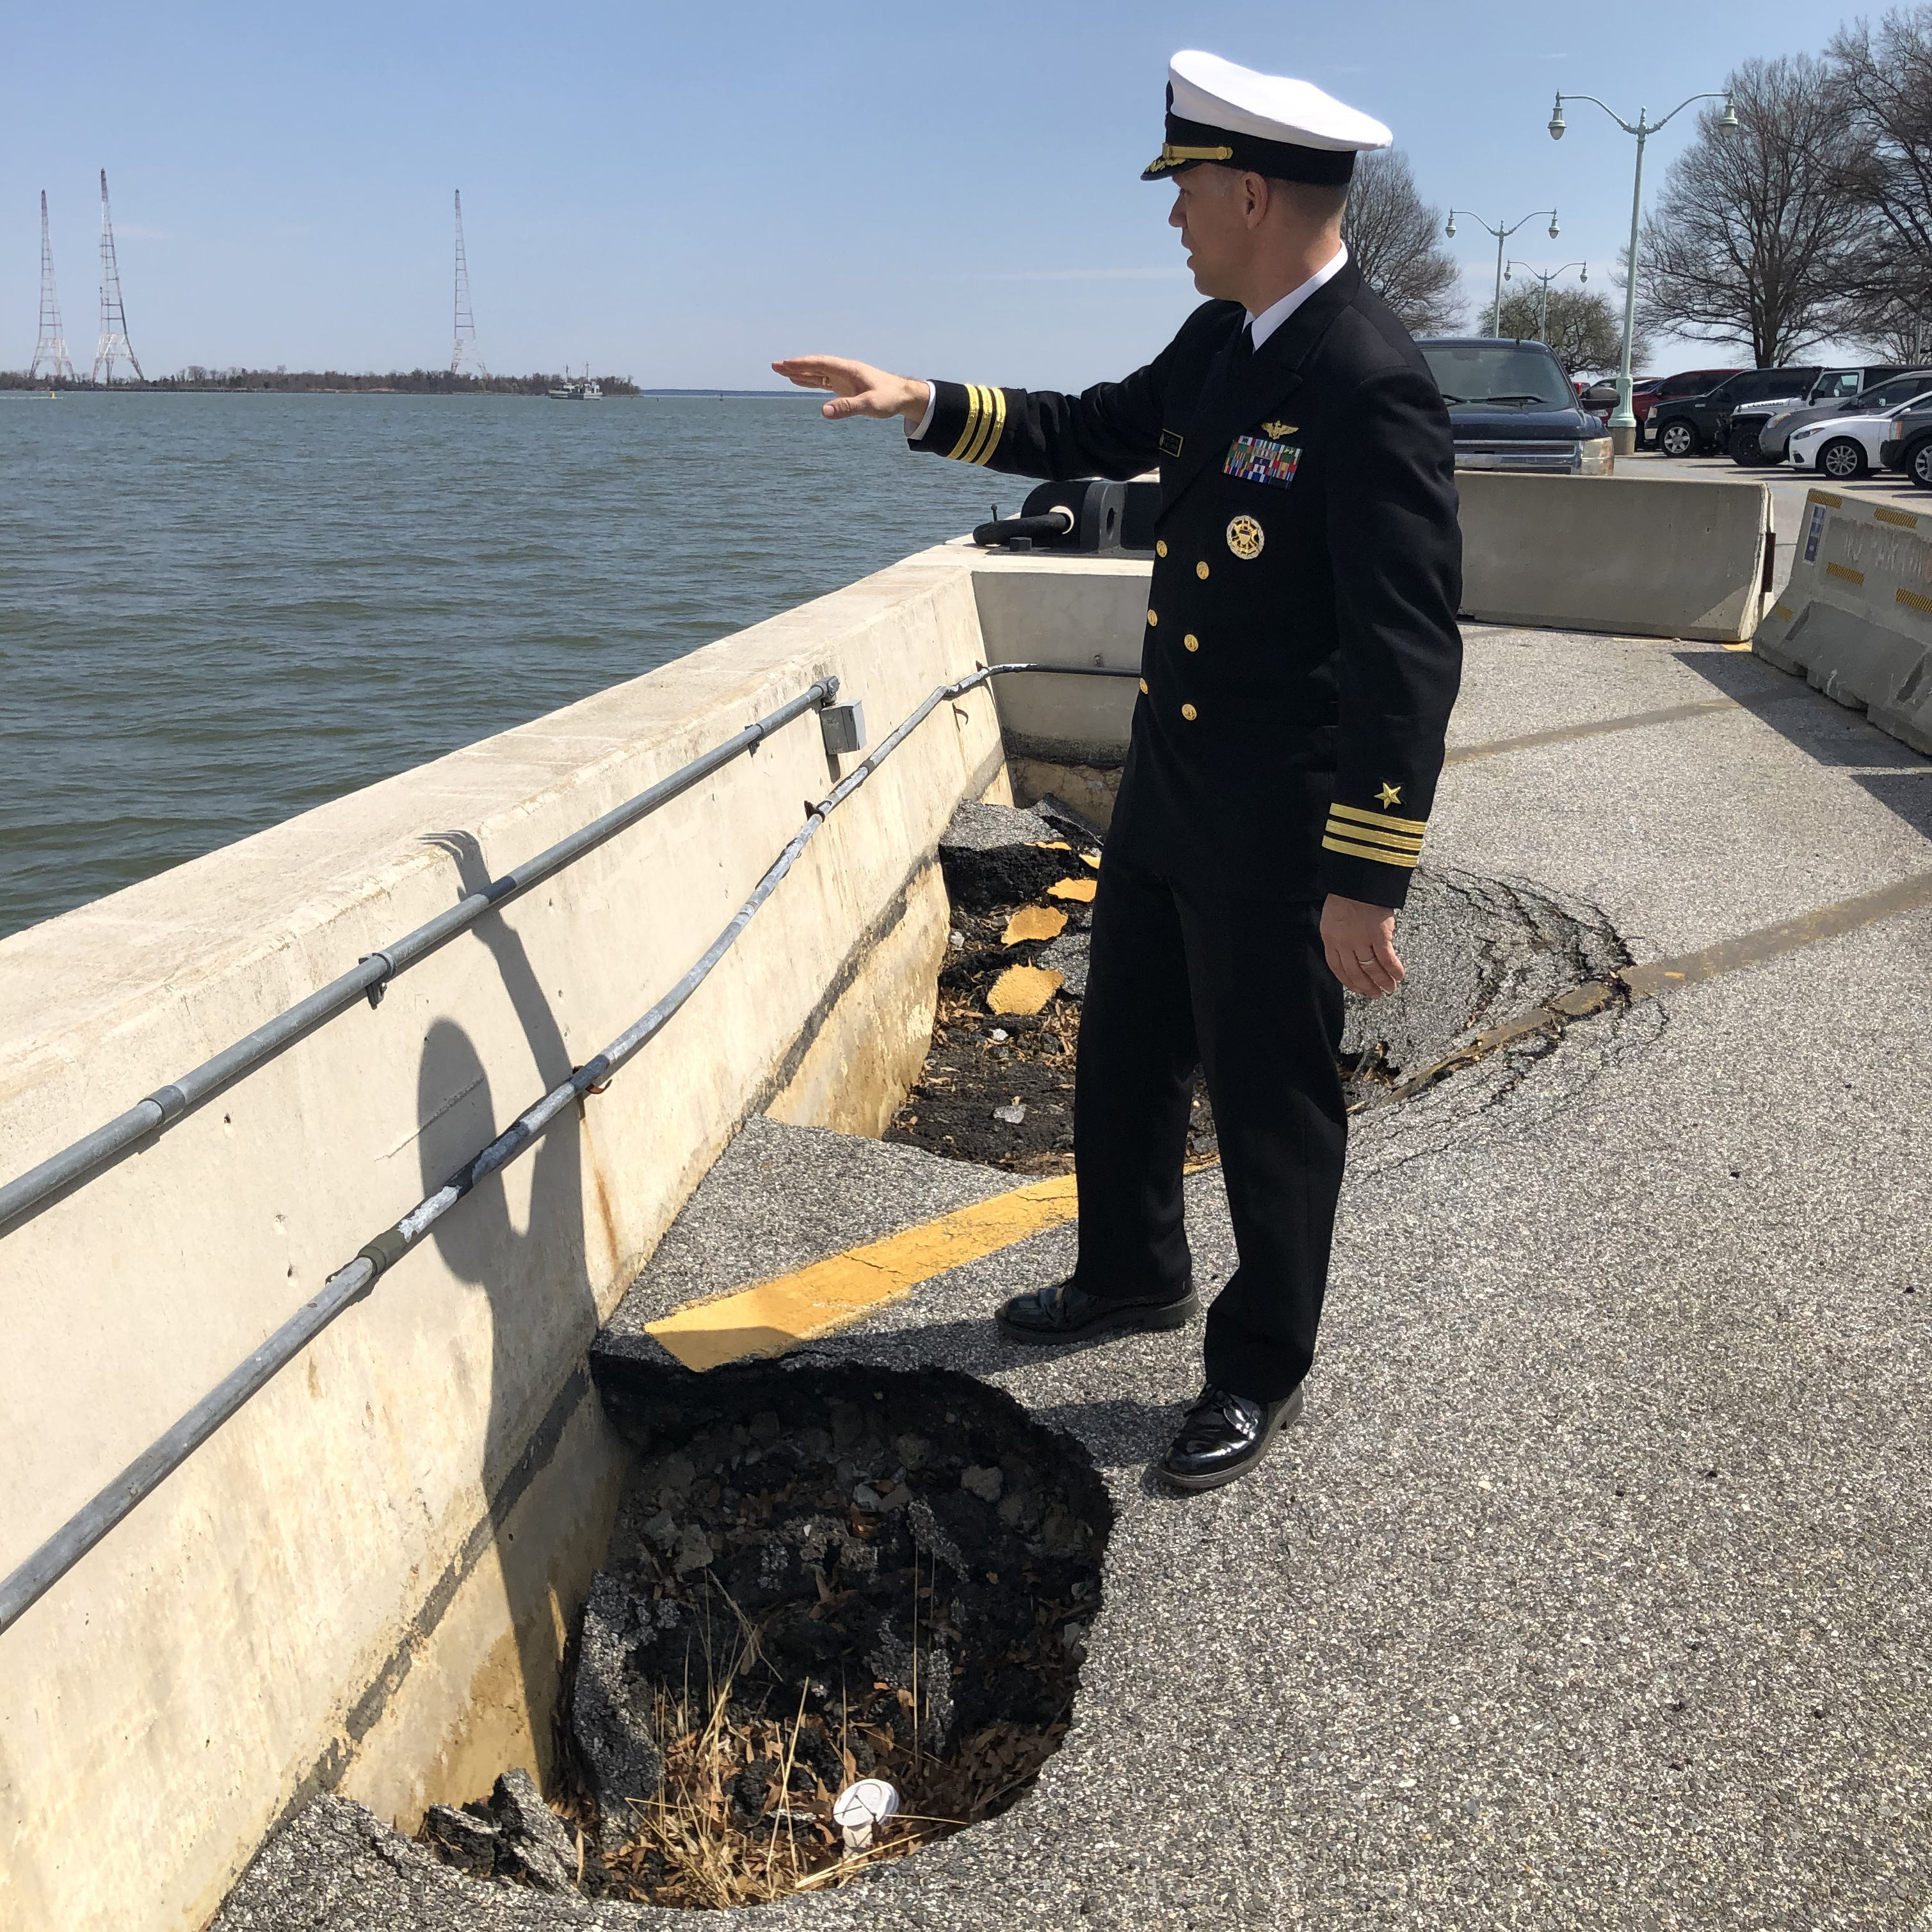 Caption: Commander David McKinney, a spokesman for the U.S. Naval Academy, stands alongside a sinkhole on the Severn River waterfront, where the Academy plans to build a new seawall to better withstand flooding., Credit: Jay Price/American Homefront